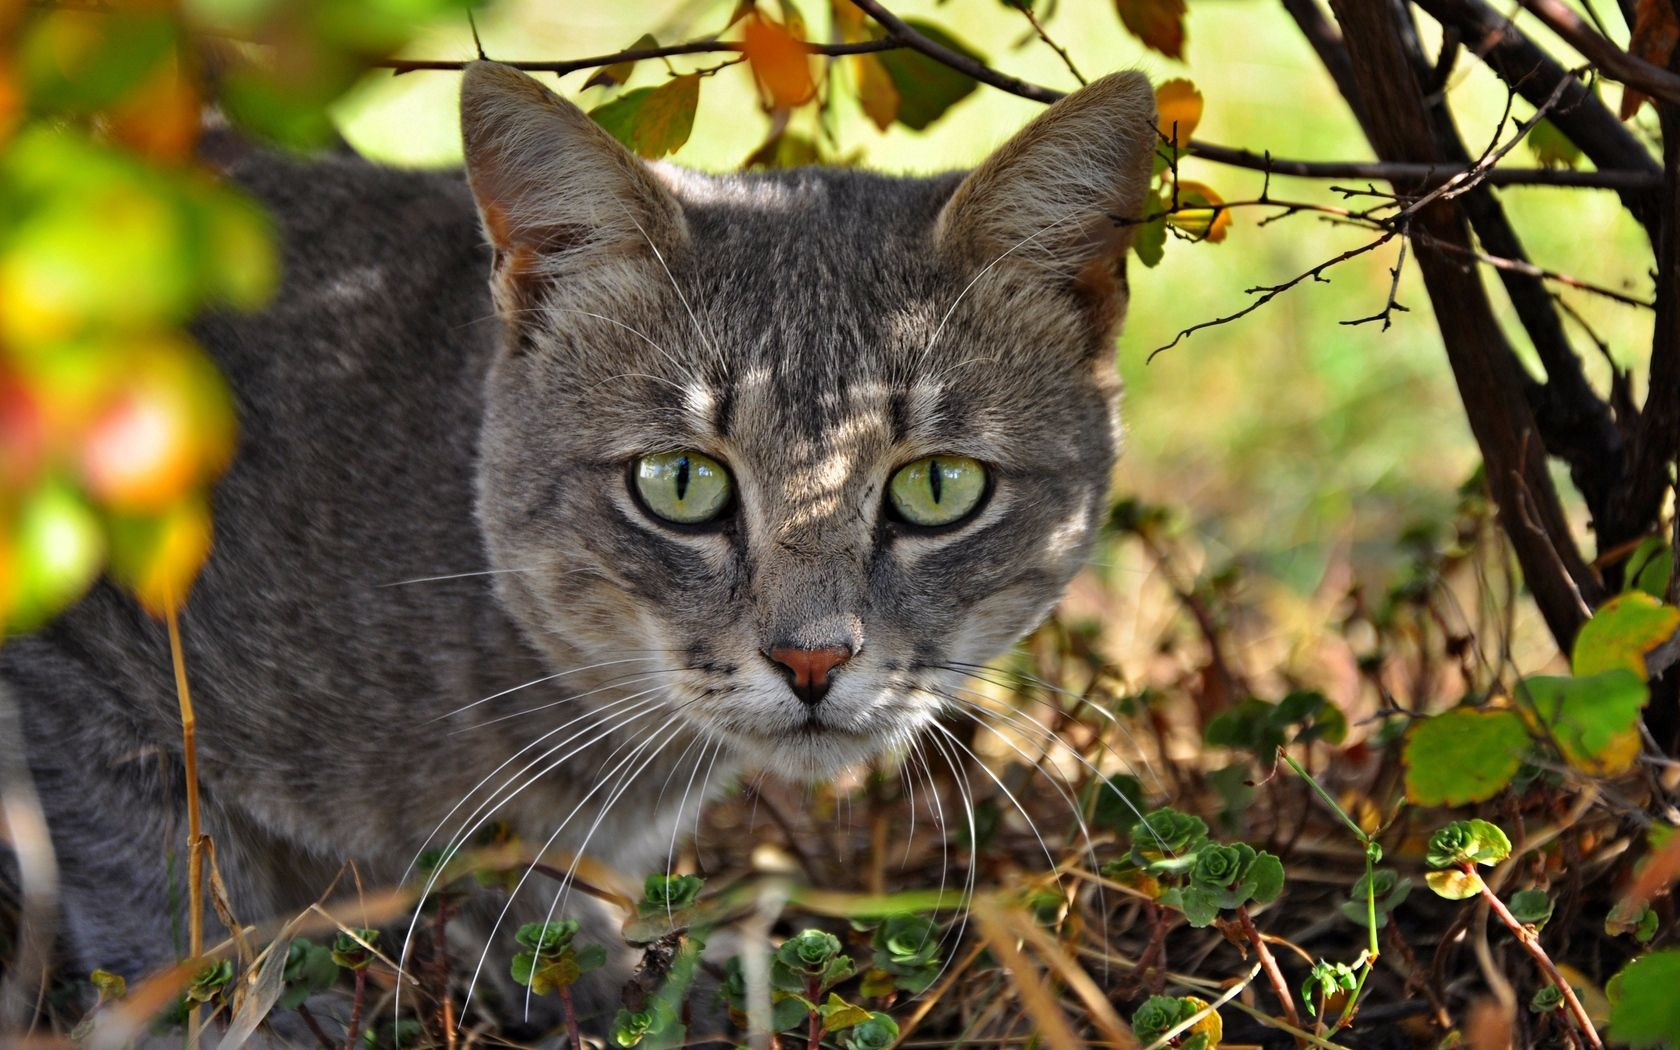 104329 download wallpaper Animals, Cat, Muzzle, Grass, Hunting, Hunt screensavers and pictures for free